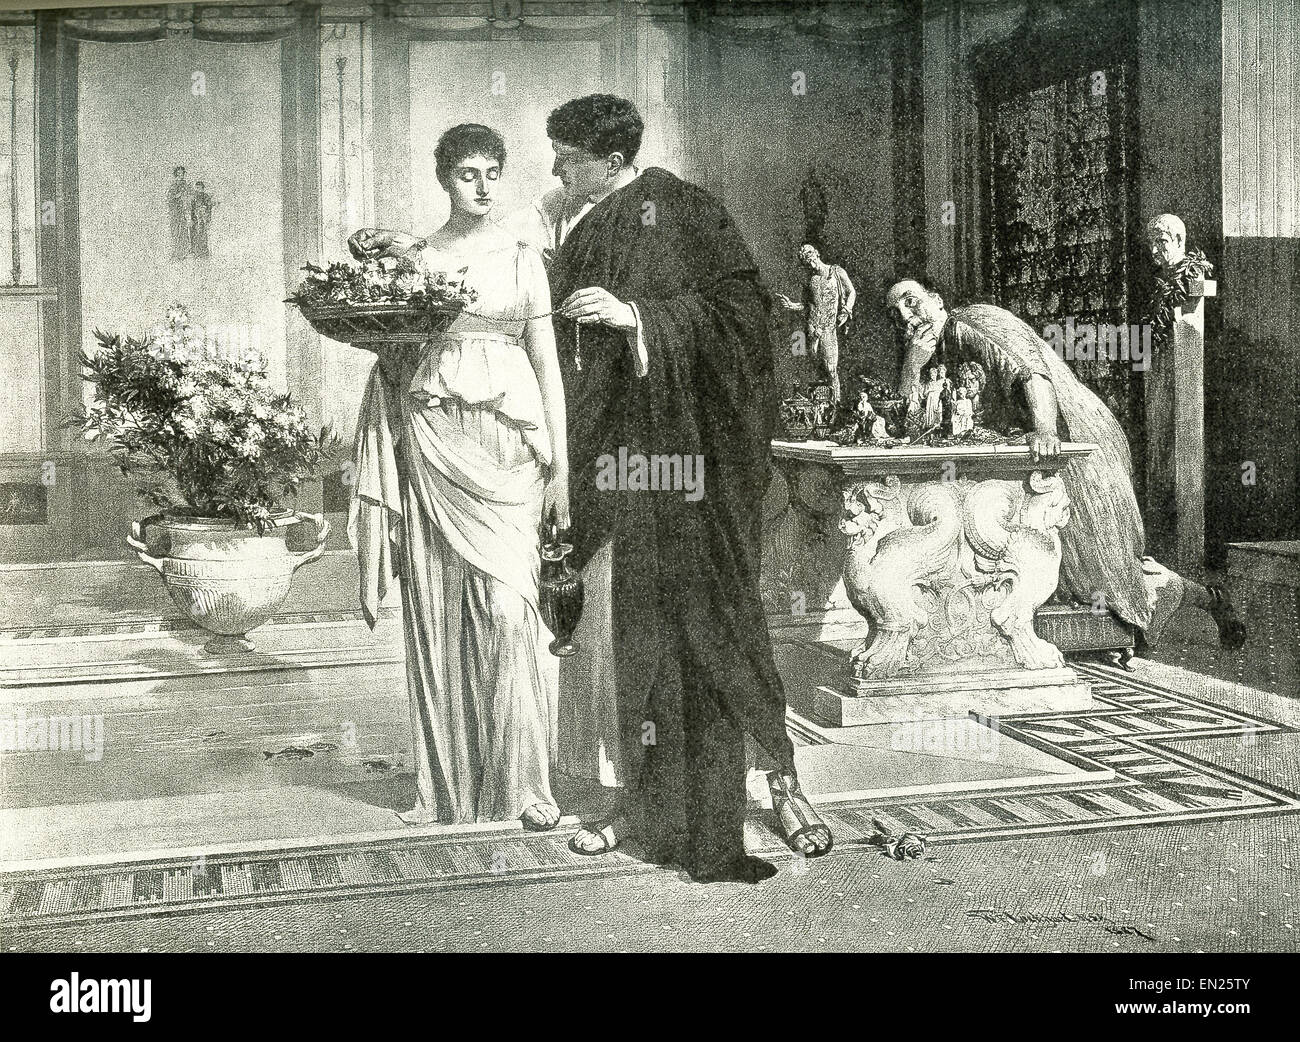 characters in a novel stock photos characters in a novel stock glaucus and nydia are characters in the 1834 novel the last days of pompeii